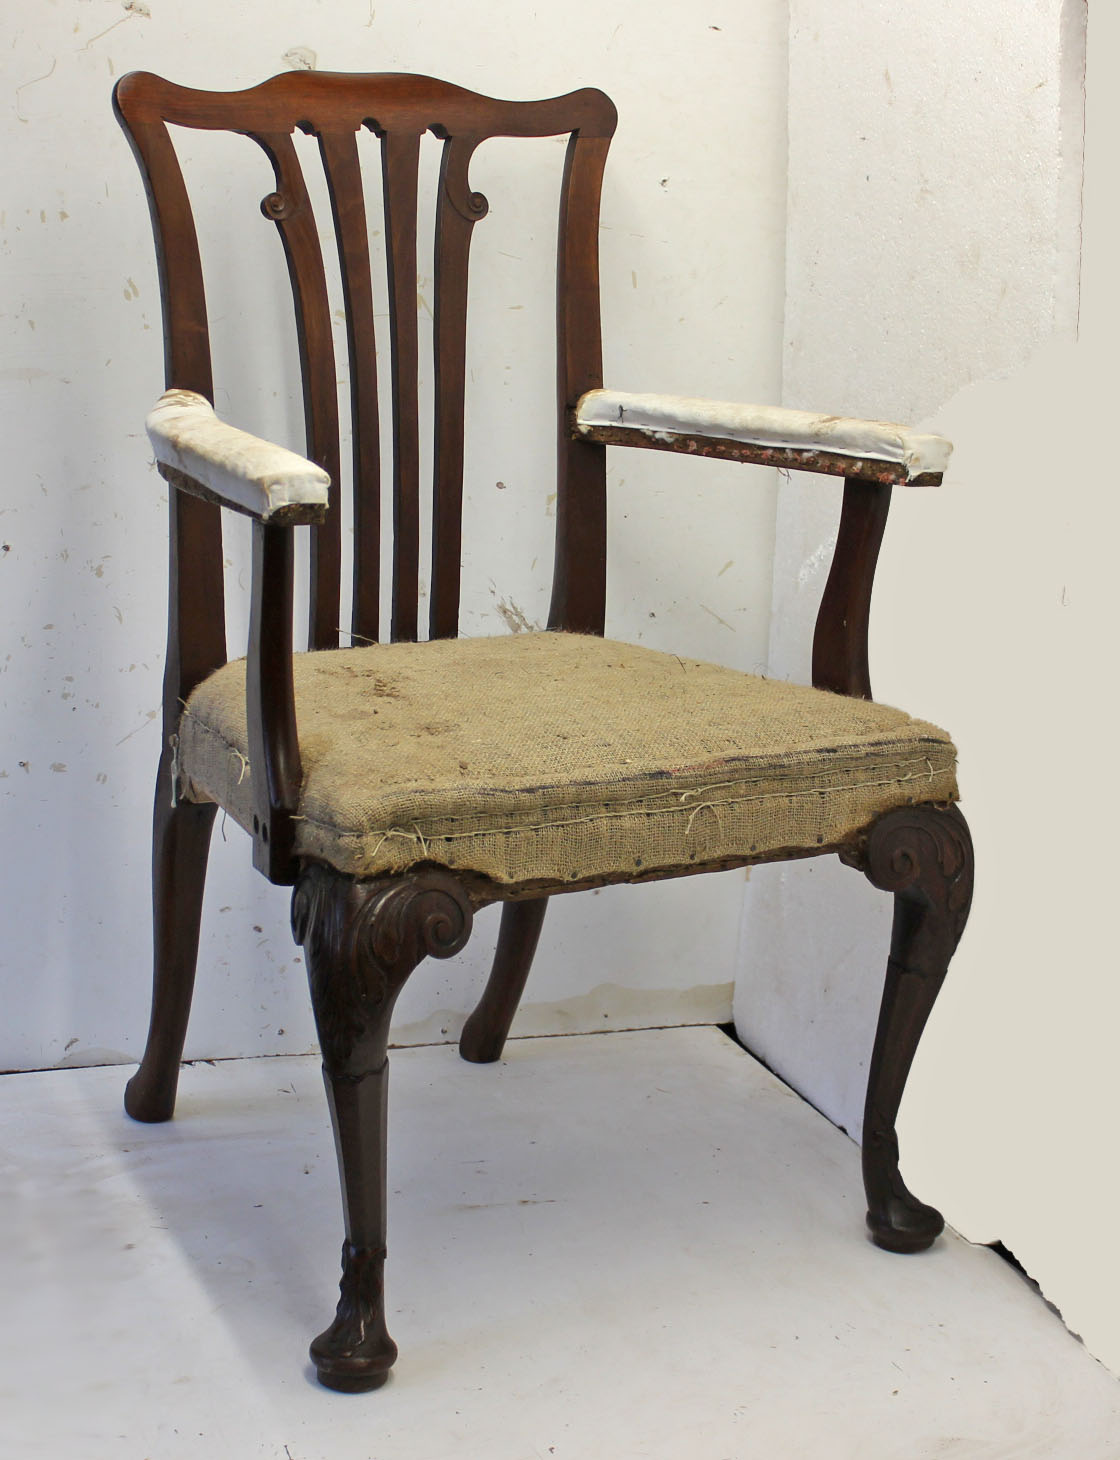 Antique chair restoration. An Irish George II walnut and mahogany carver - OldChairs.ie - We Run Weekend Restoration Courses. We Also Sell And